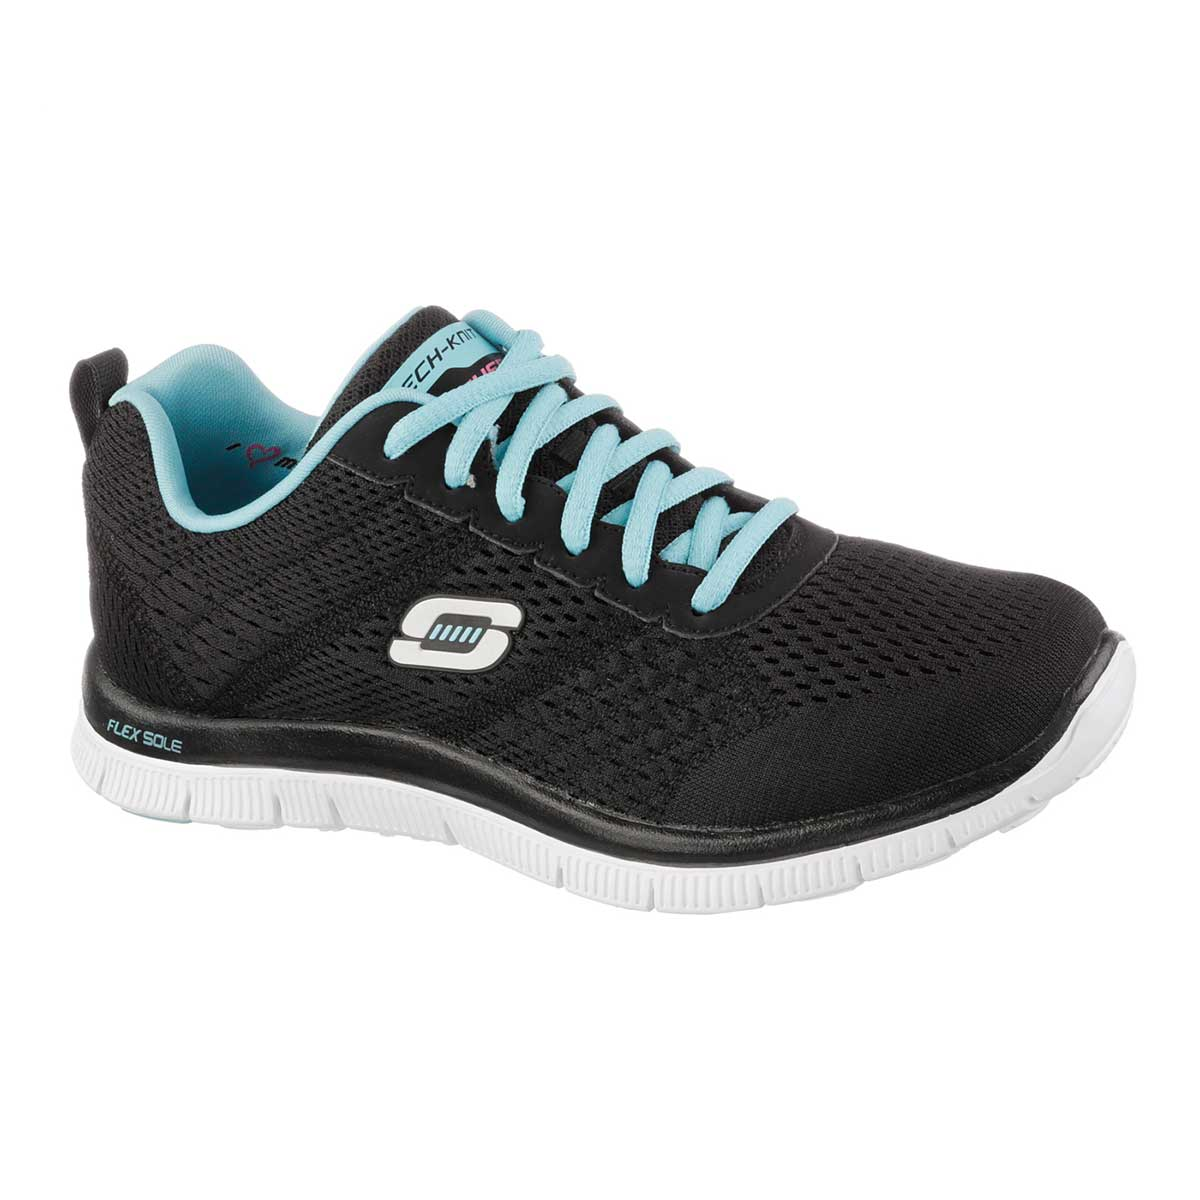 skechers online india